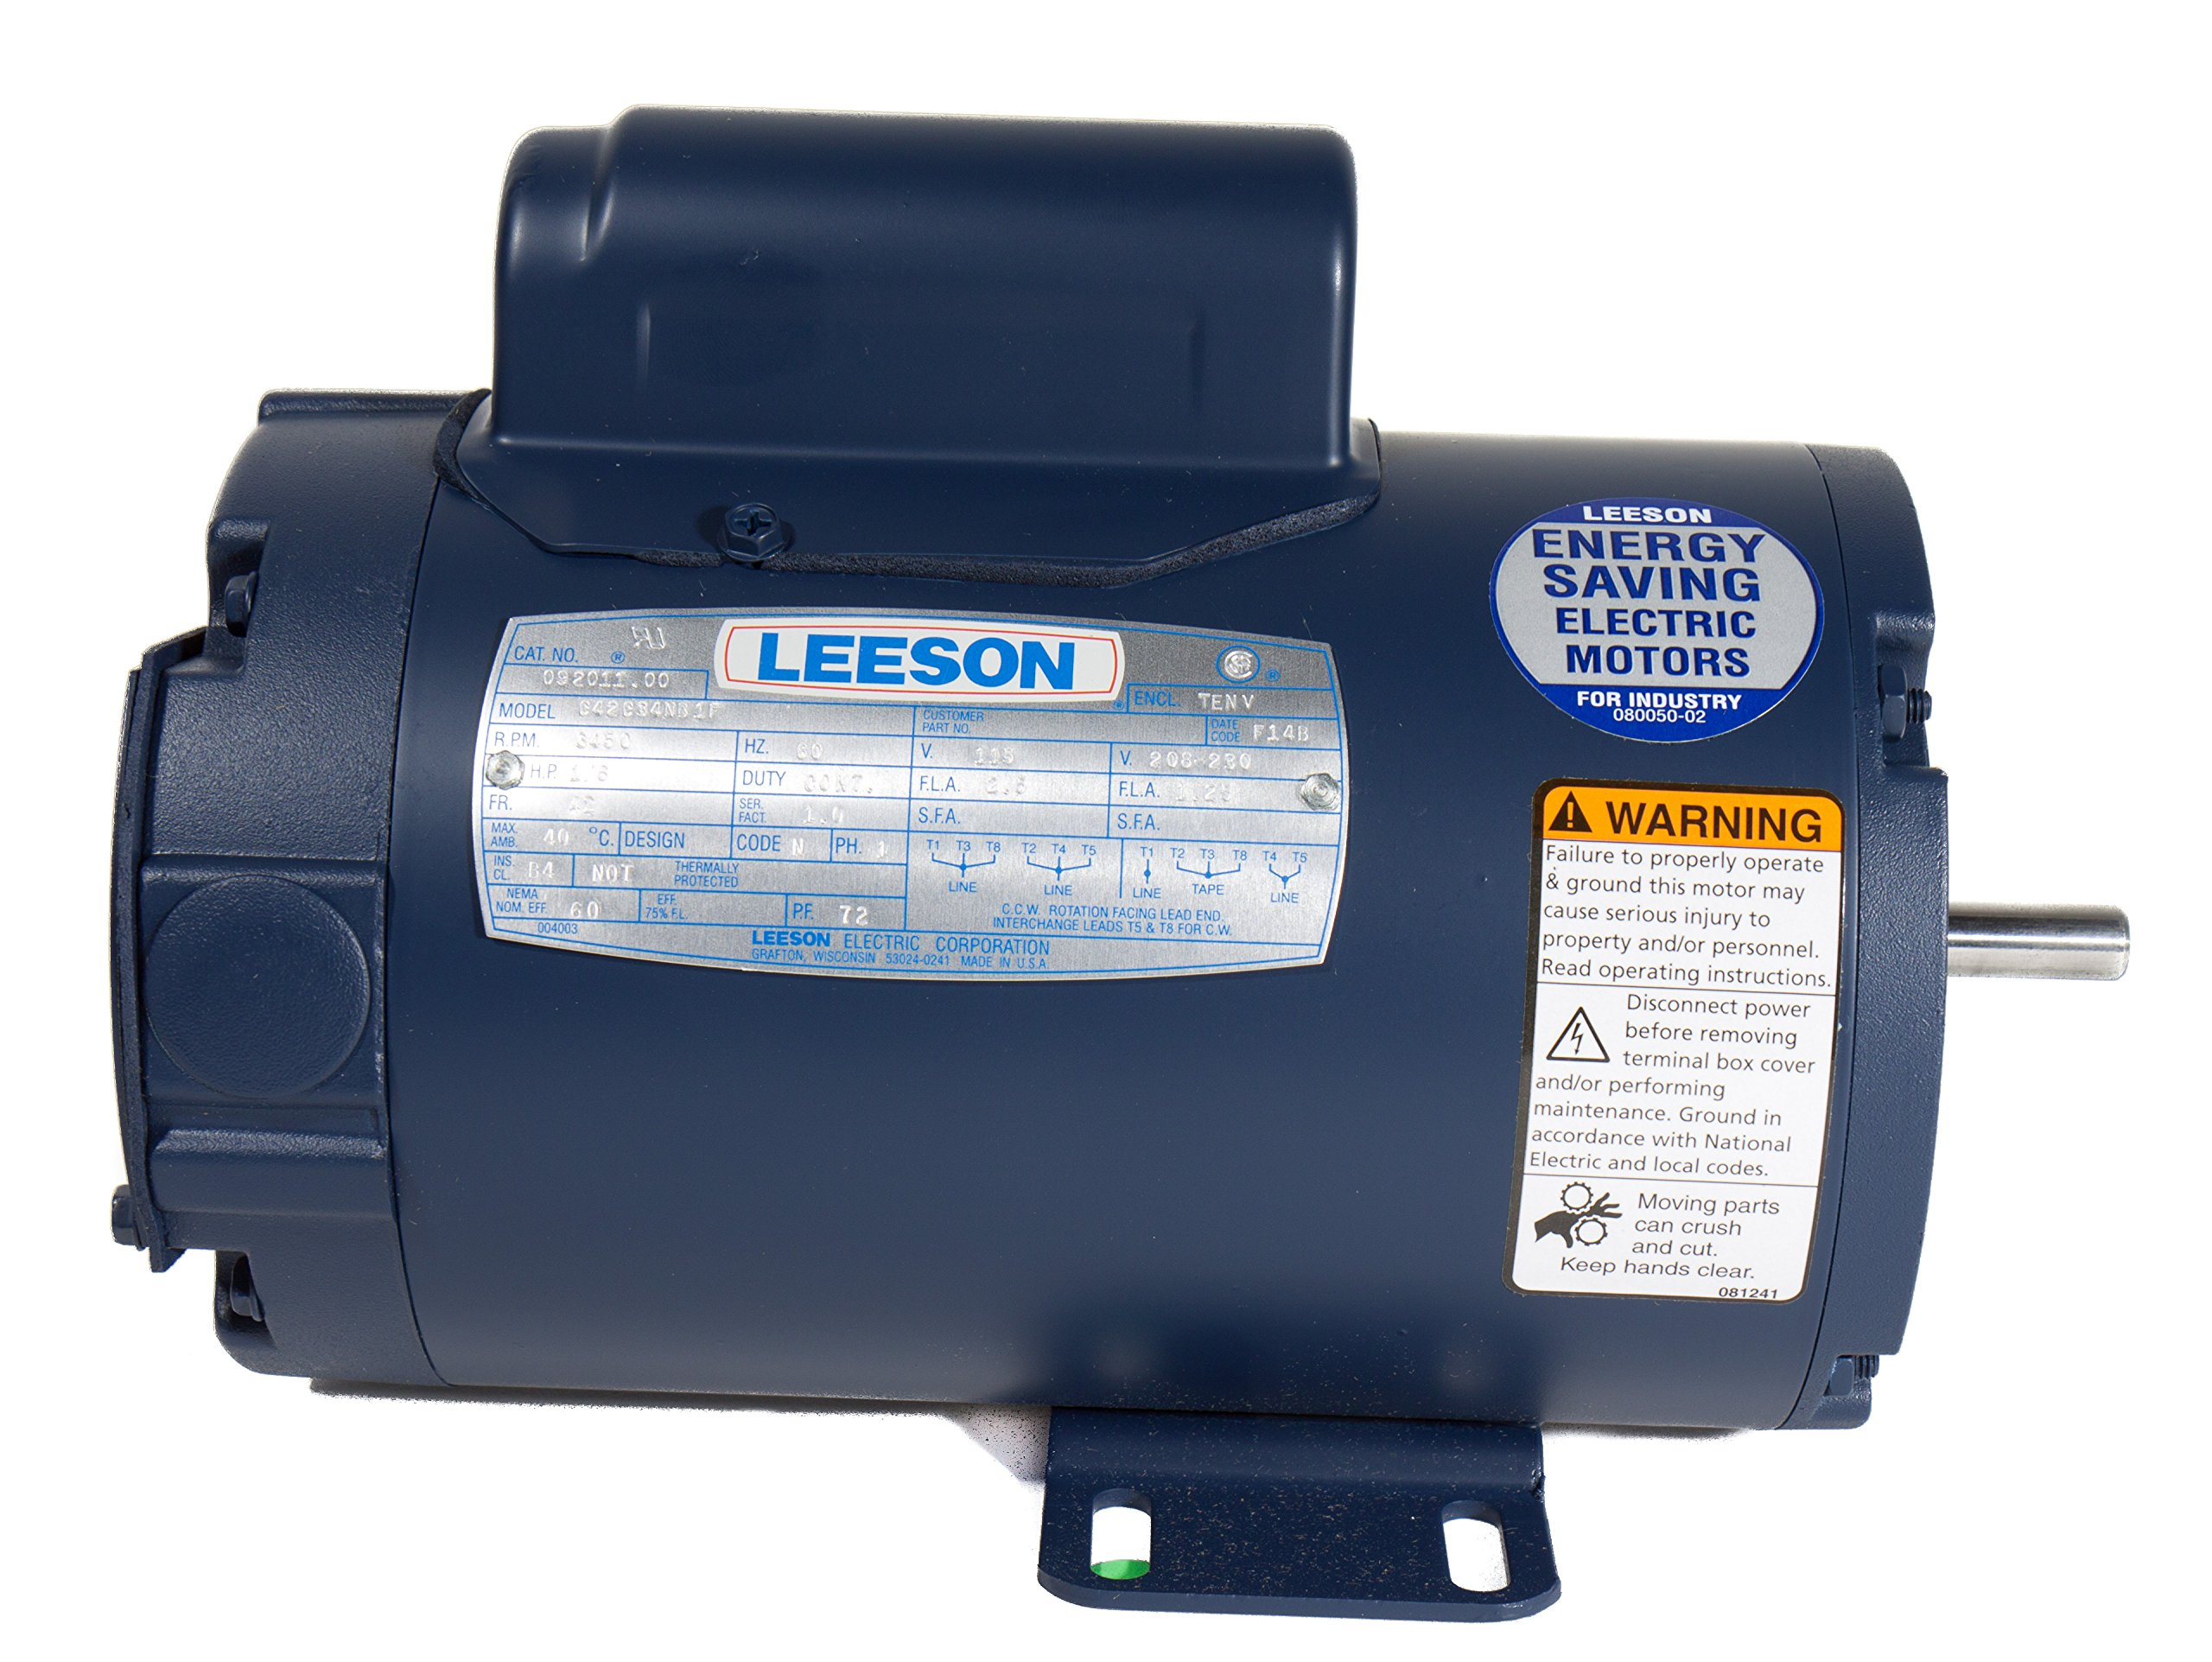 Leeson 132044.00 General Purpose ODP Motor, 1 Phase, 184T Frame, Rigid Mounting, 7.5HP, 3600 RPM, 208-230V Voltage, 60Hz Fequency